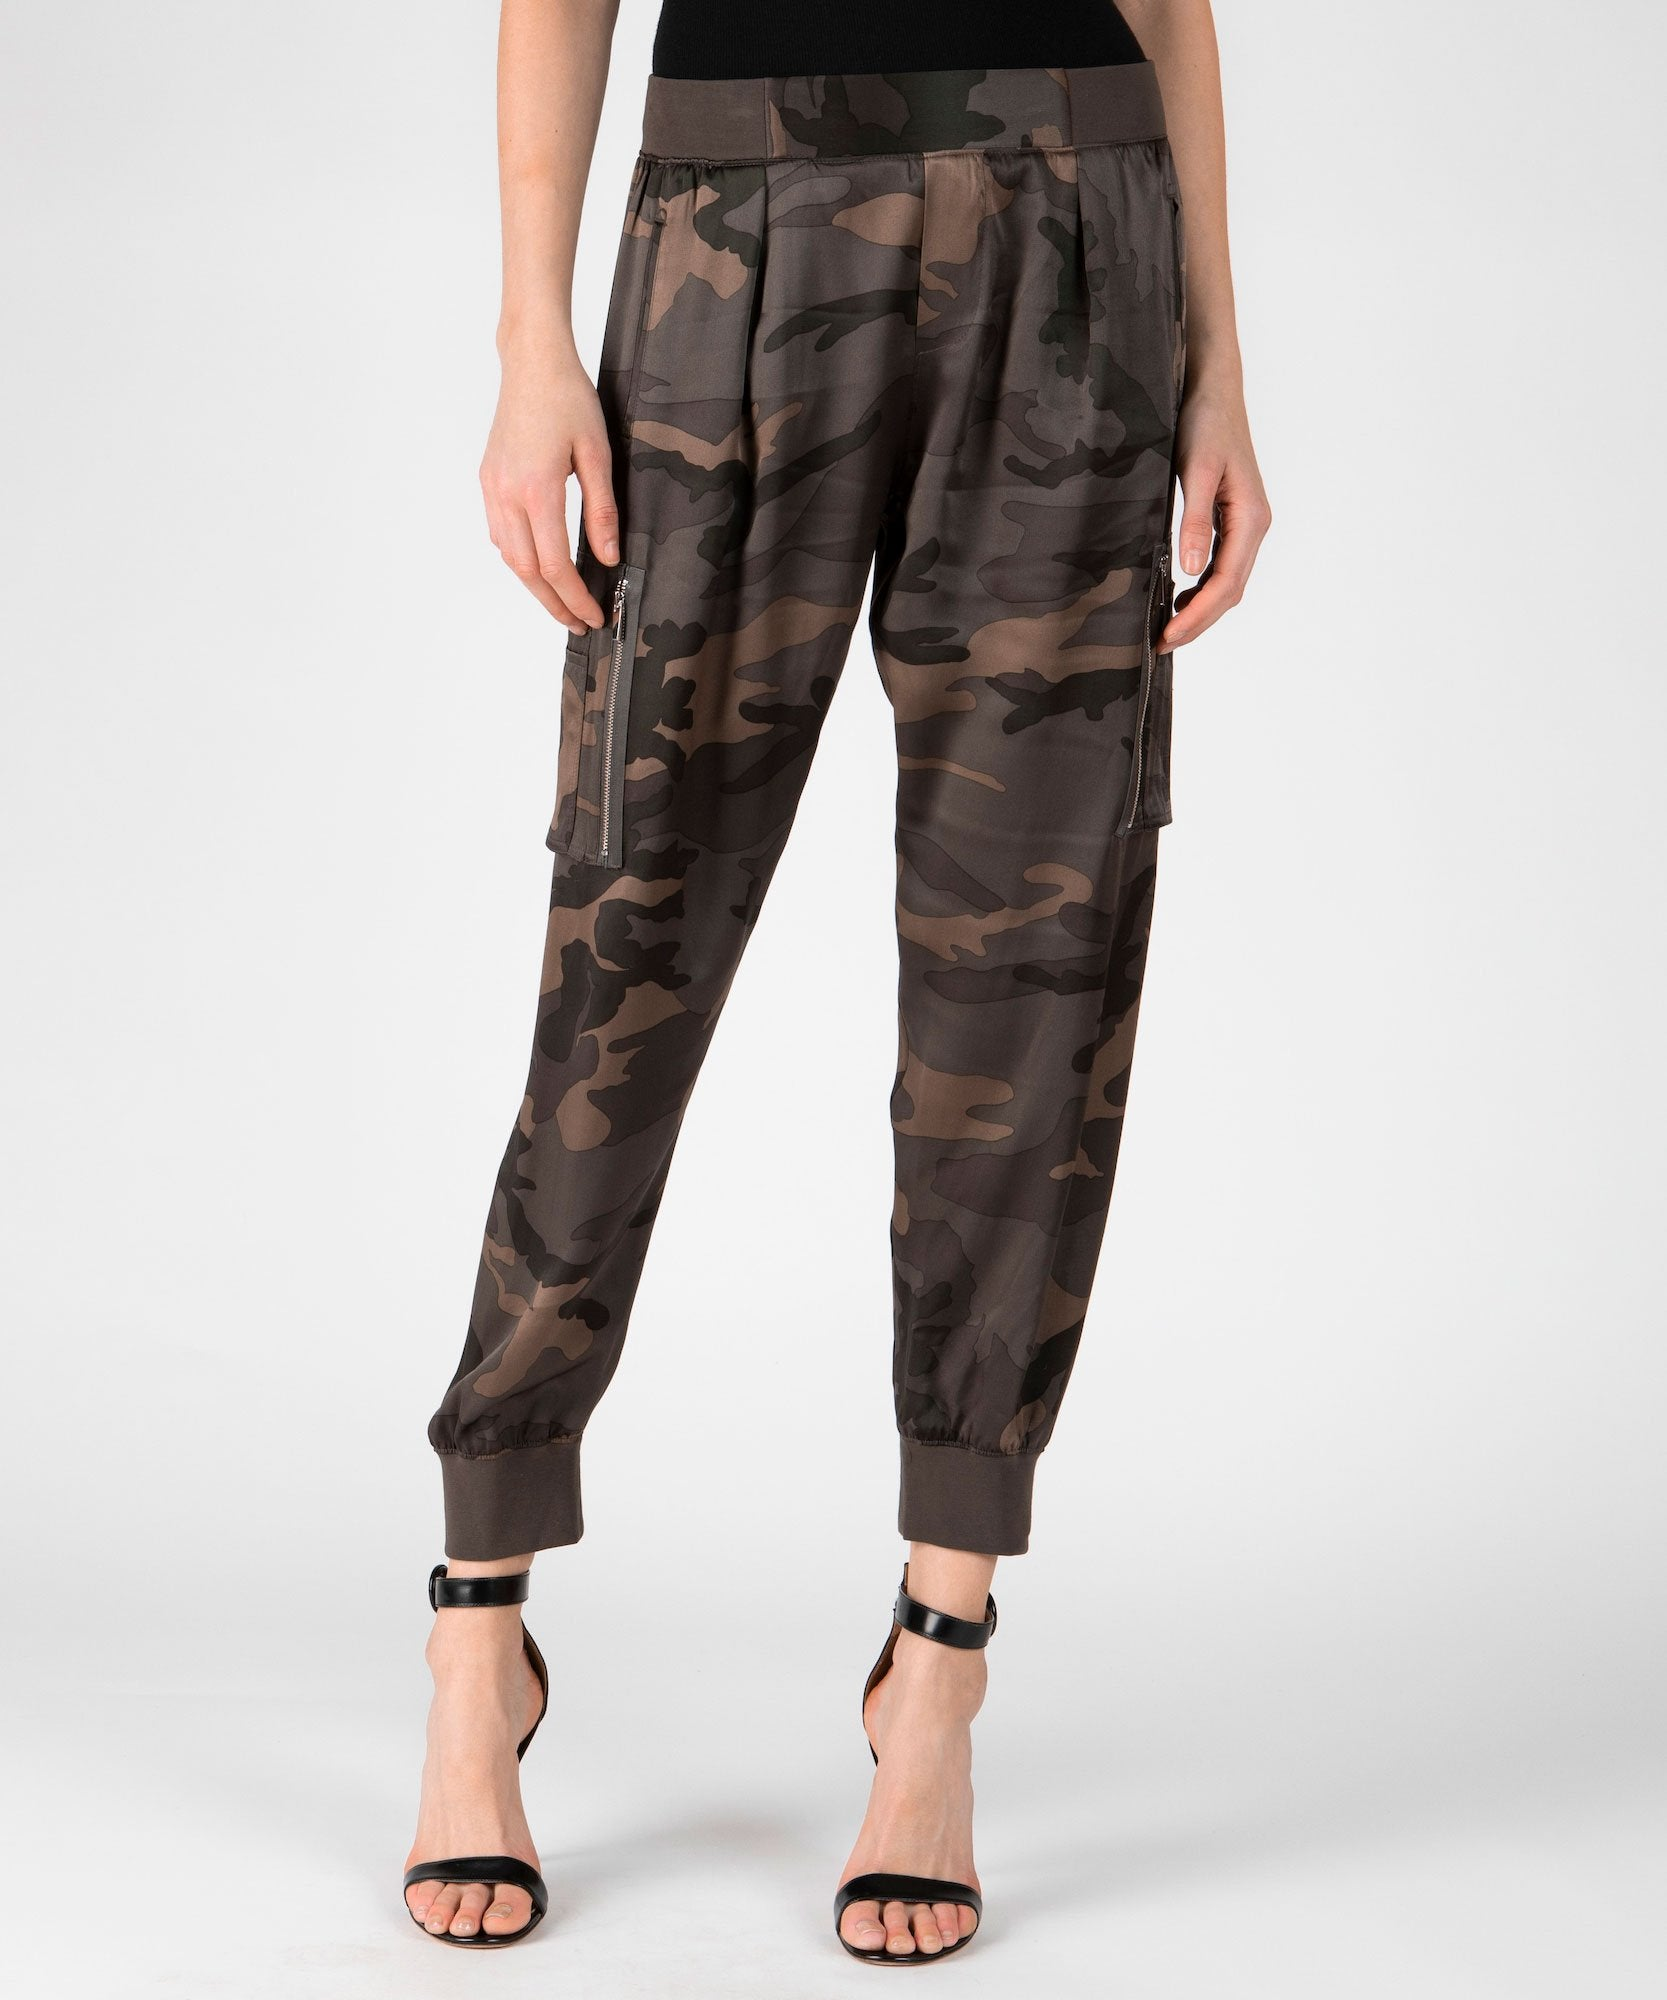 Jungle Camo Silk Cargo Sweatpants - Women's Silk Pants by ATM Anthony Thomas Melillo